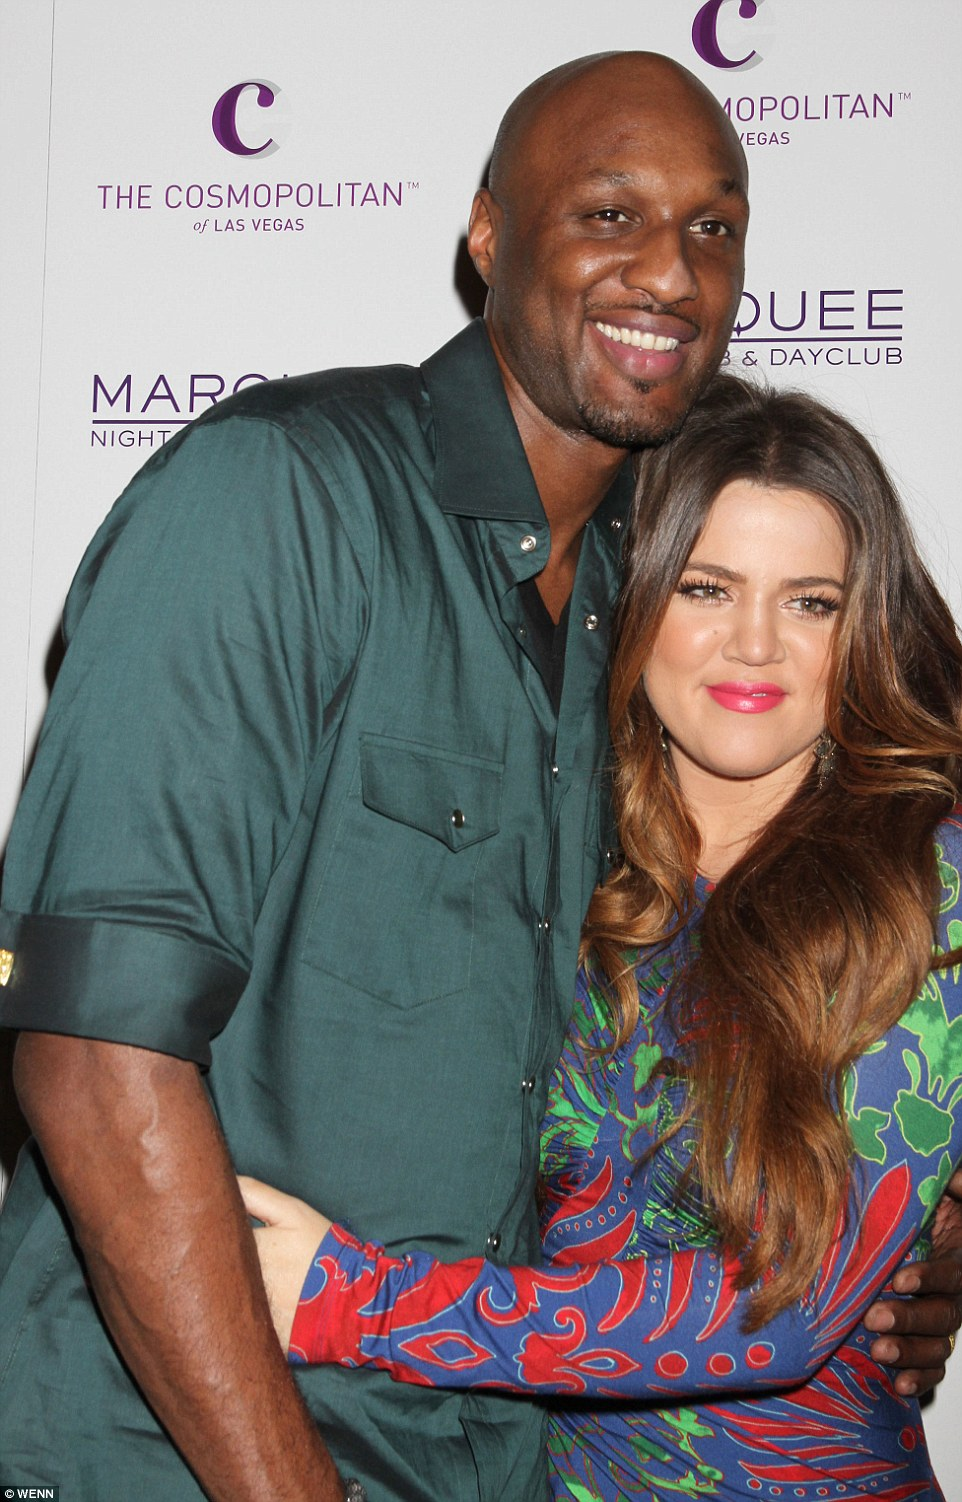 2D85FD4000000578-3277973-Lamar_Odom_and_Khloe_Kardashian_in_October_2011_two_years_after_-a-22_1445198640204